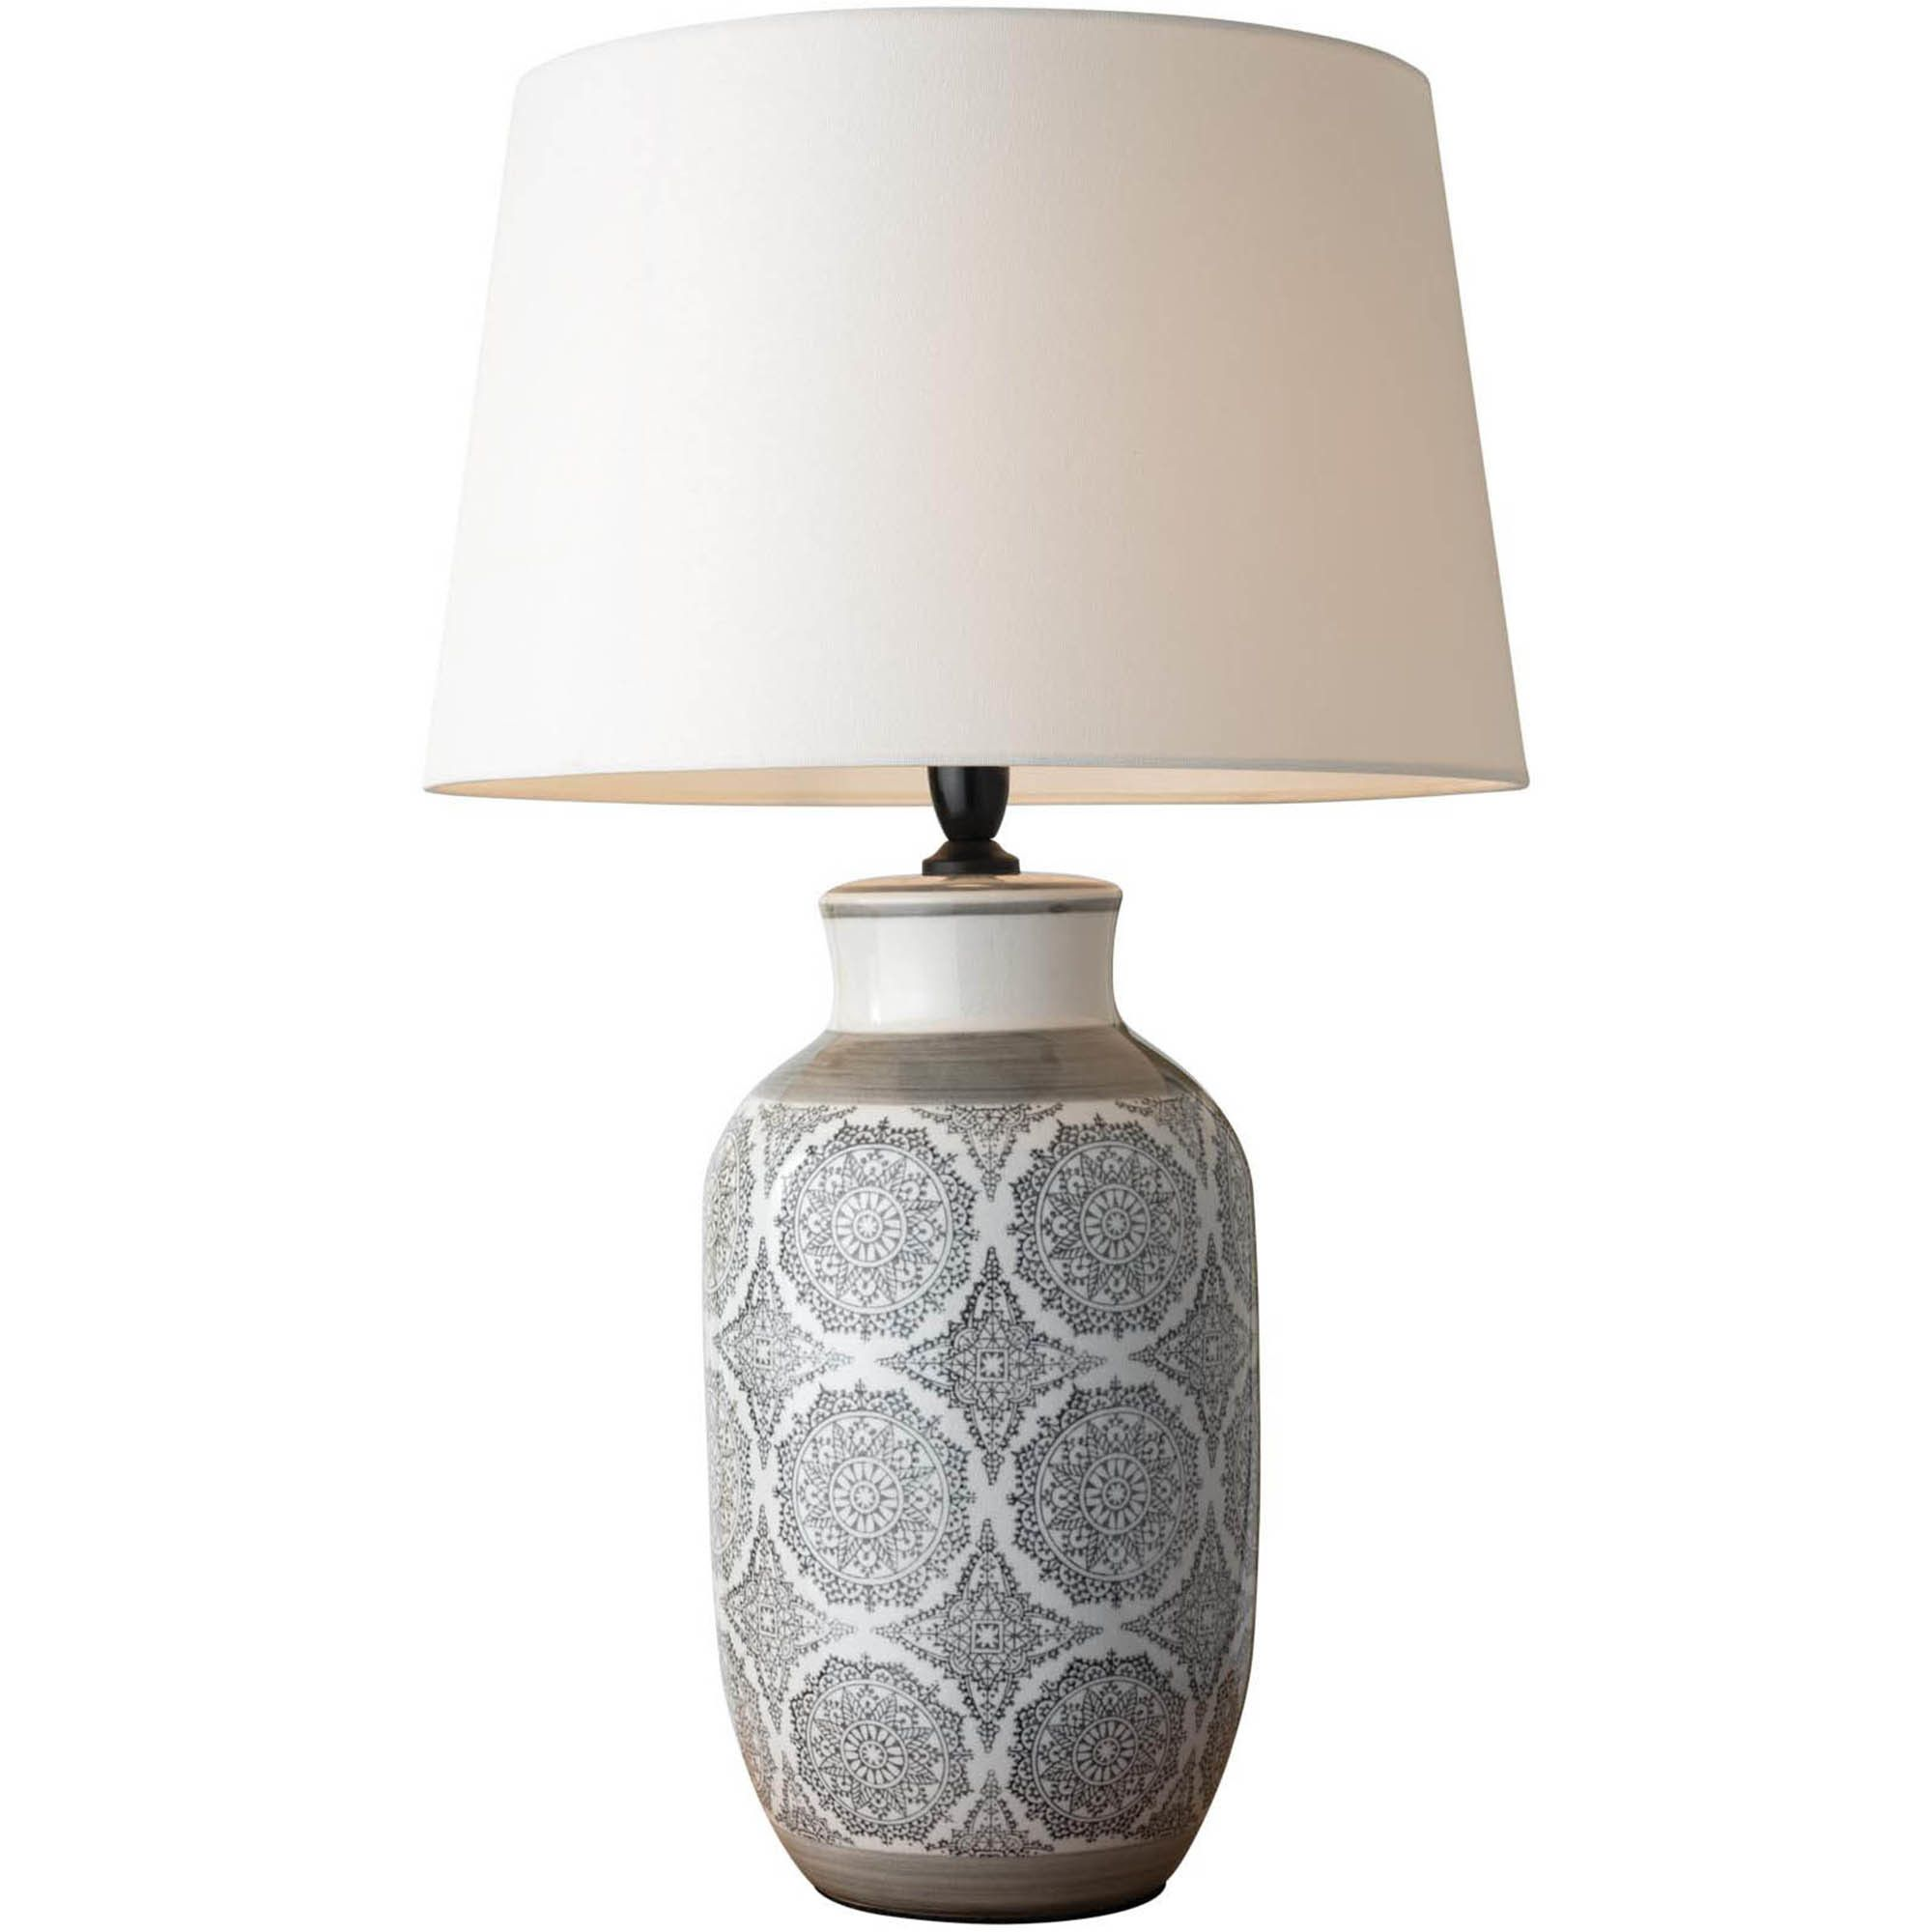 Our Adelina Table Lamp's glass base